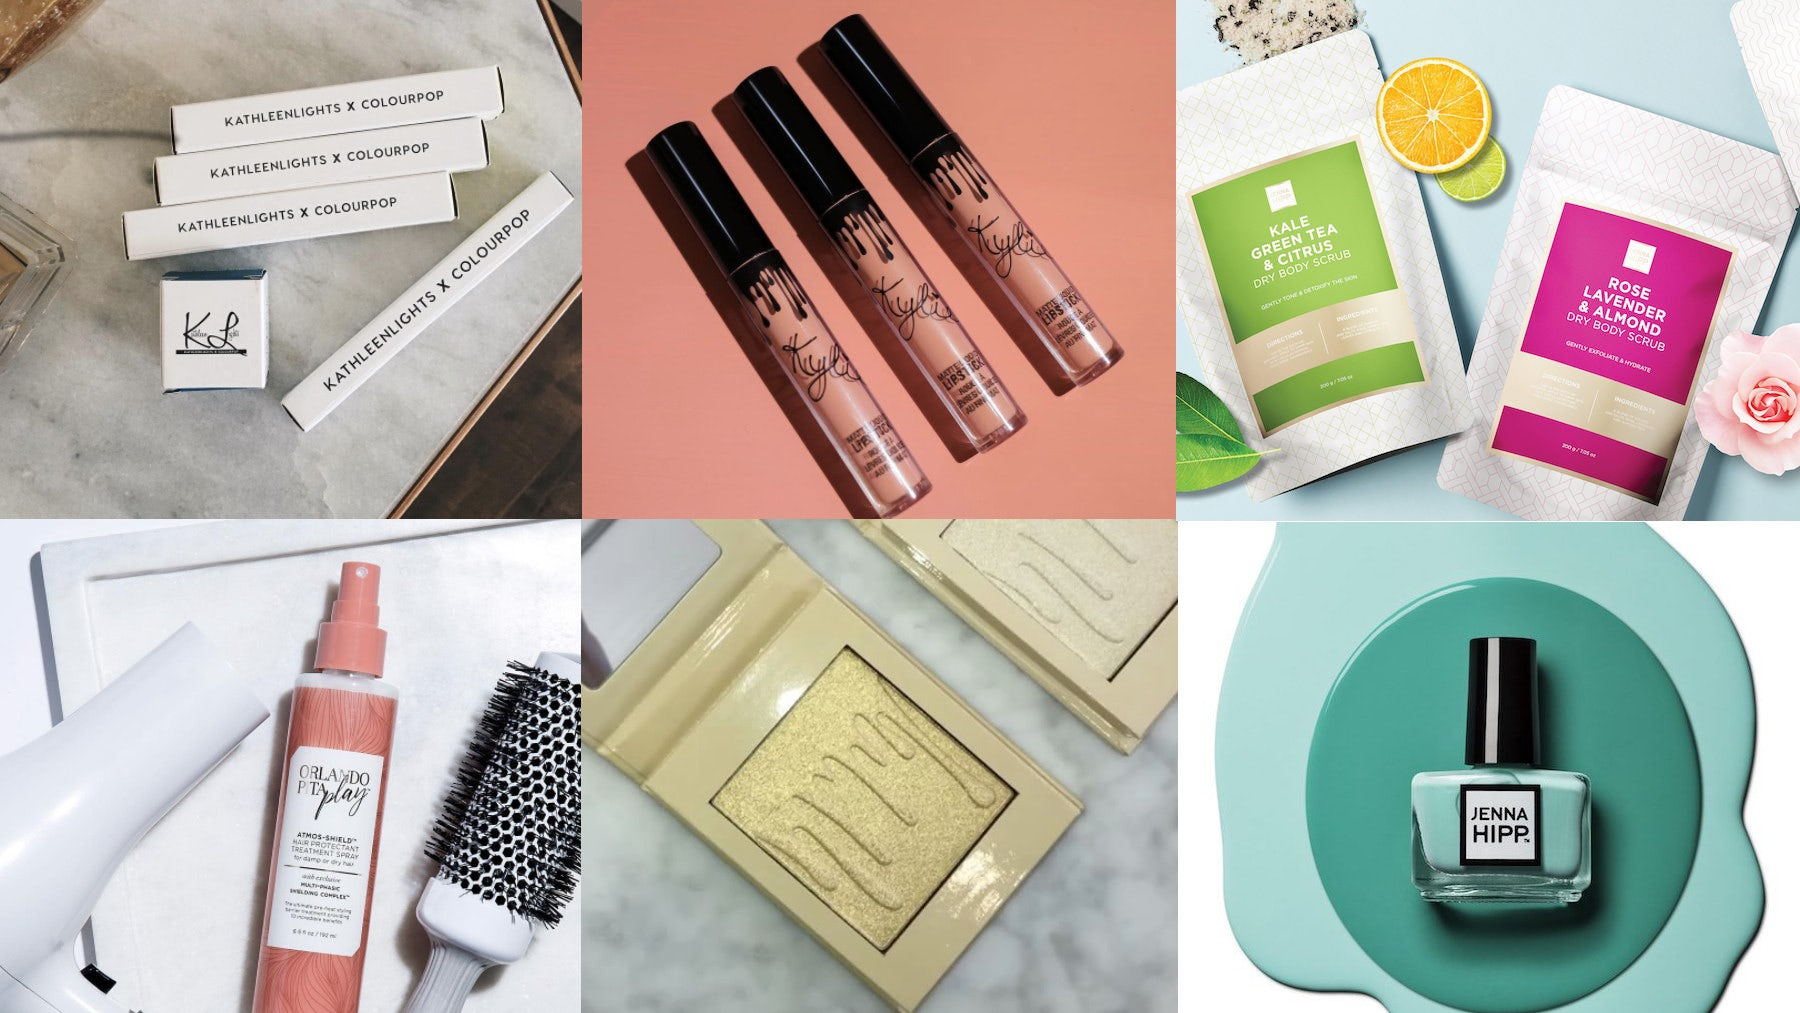 Who's Behind the Flurry of Influencer-Backed Beauty Brands?